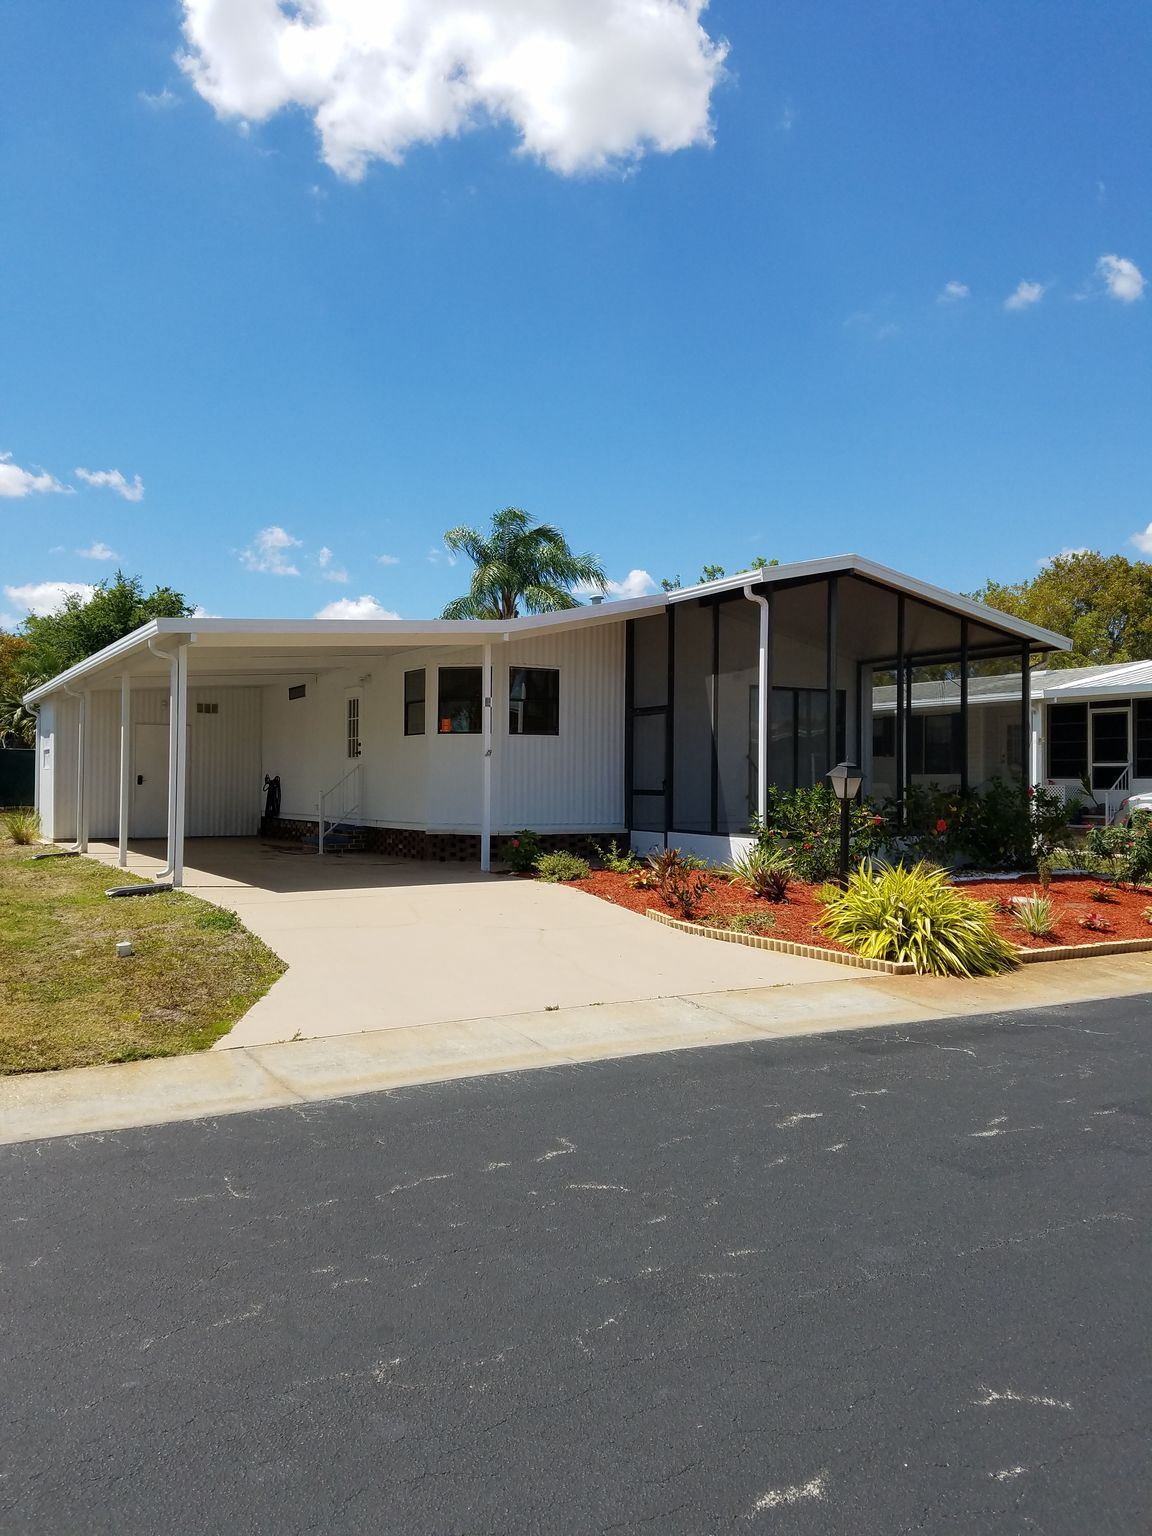 15942 Blue Skies Dr, North Fort Myers, FL 33917 | Trulia